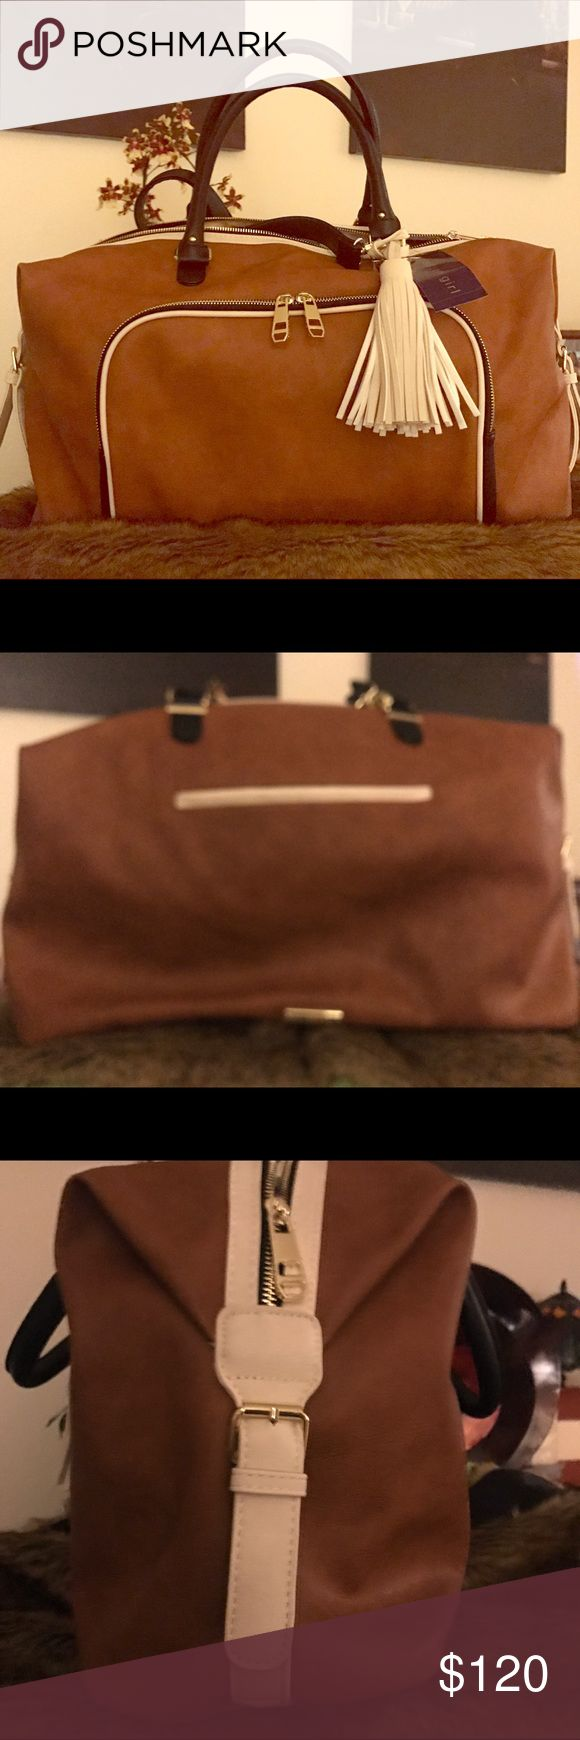 Madden New w/ tags duffle Perfect condition. Tan and bone color are neat and clean. Nice bag Madden Girl Bags Backpacks